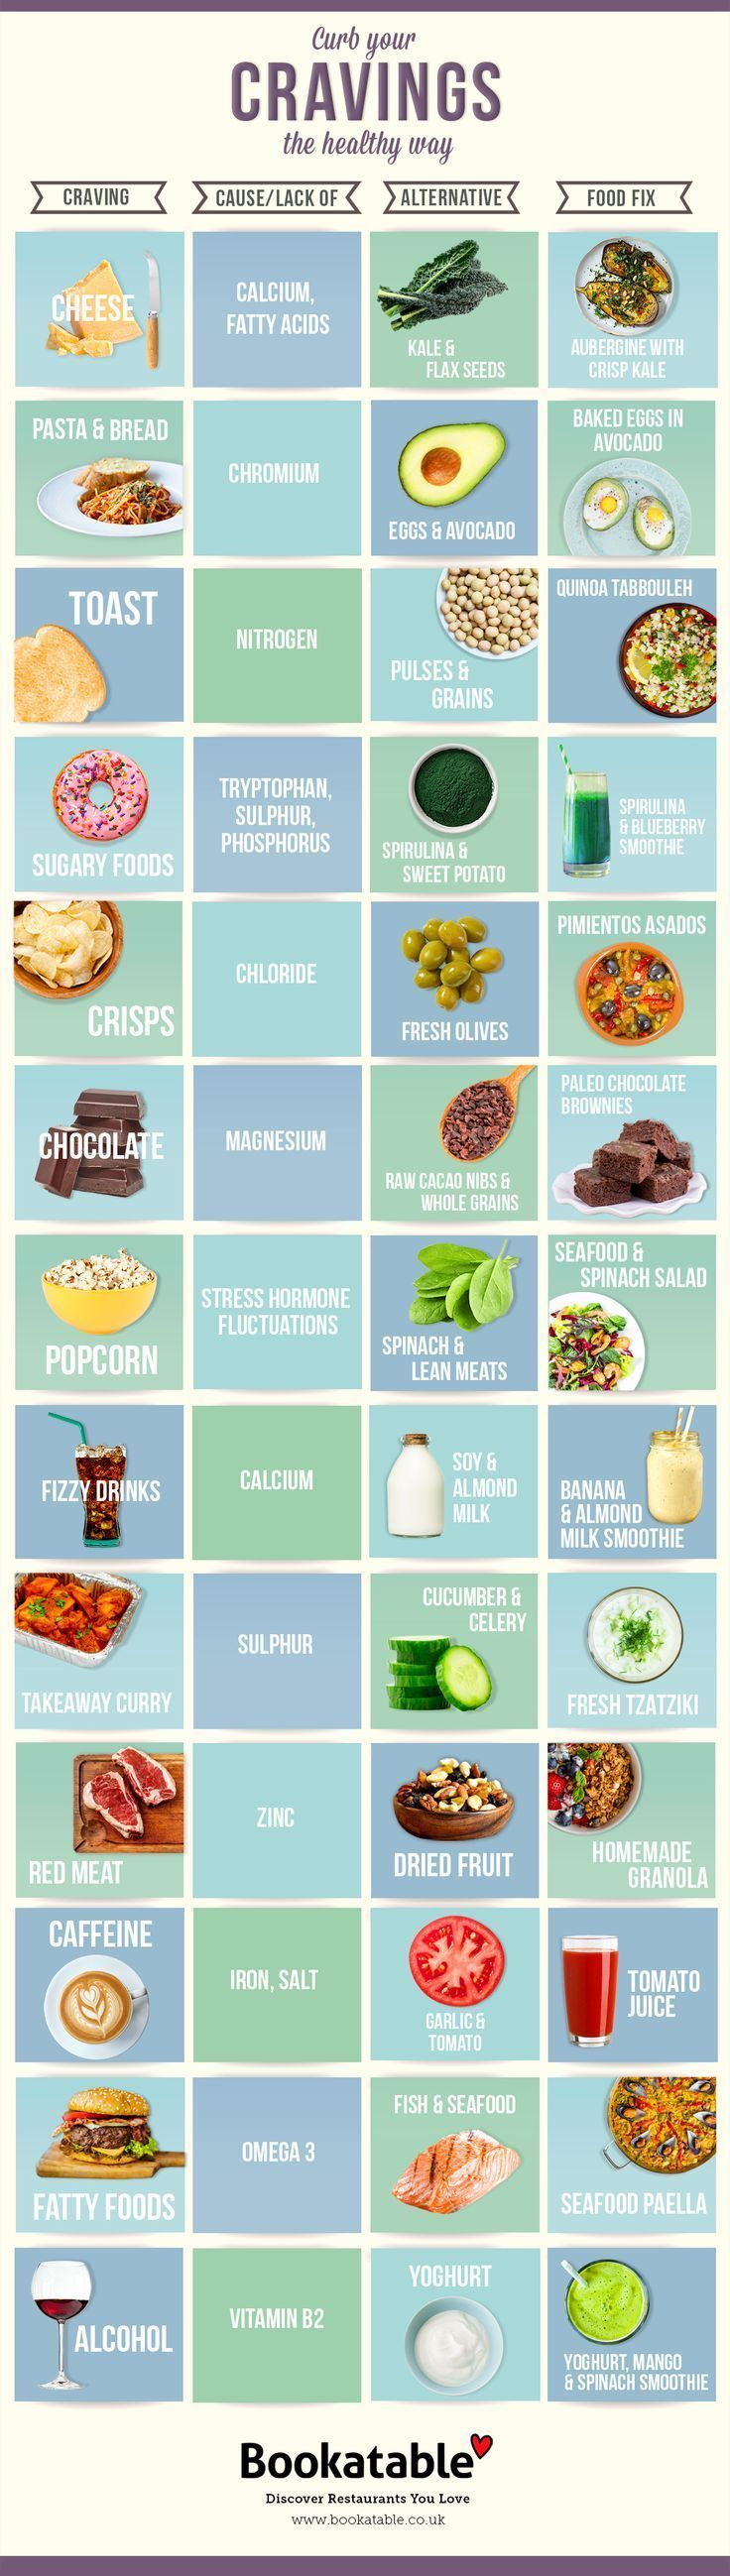 Curb Your Cravings the Healthy Way #Infographic #Food #Health                                                                                                                                                                                 More